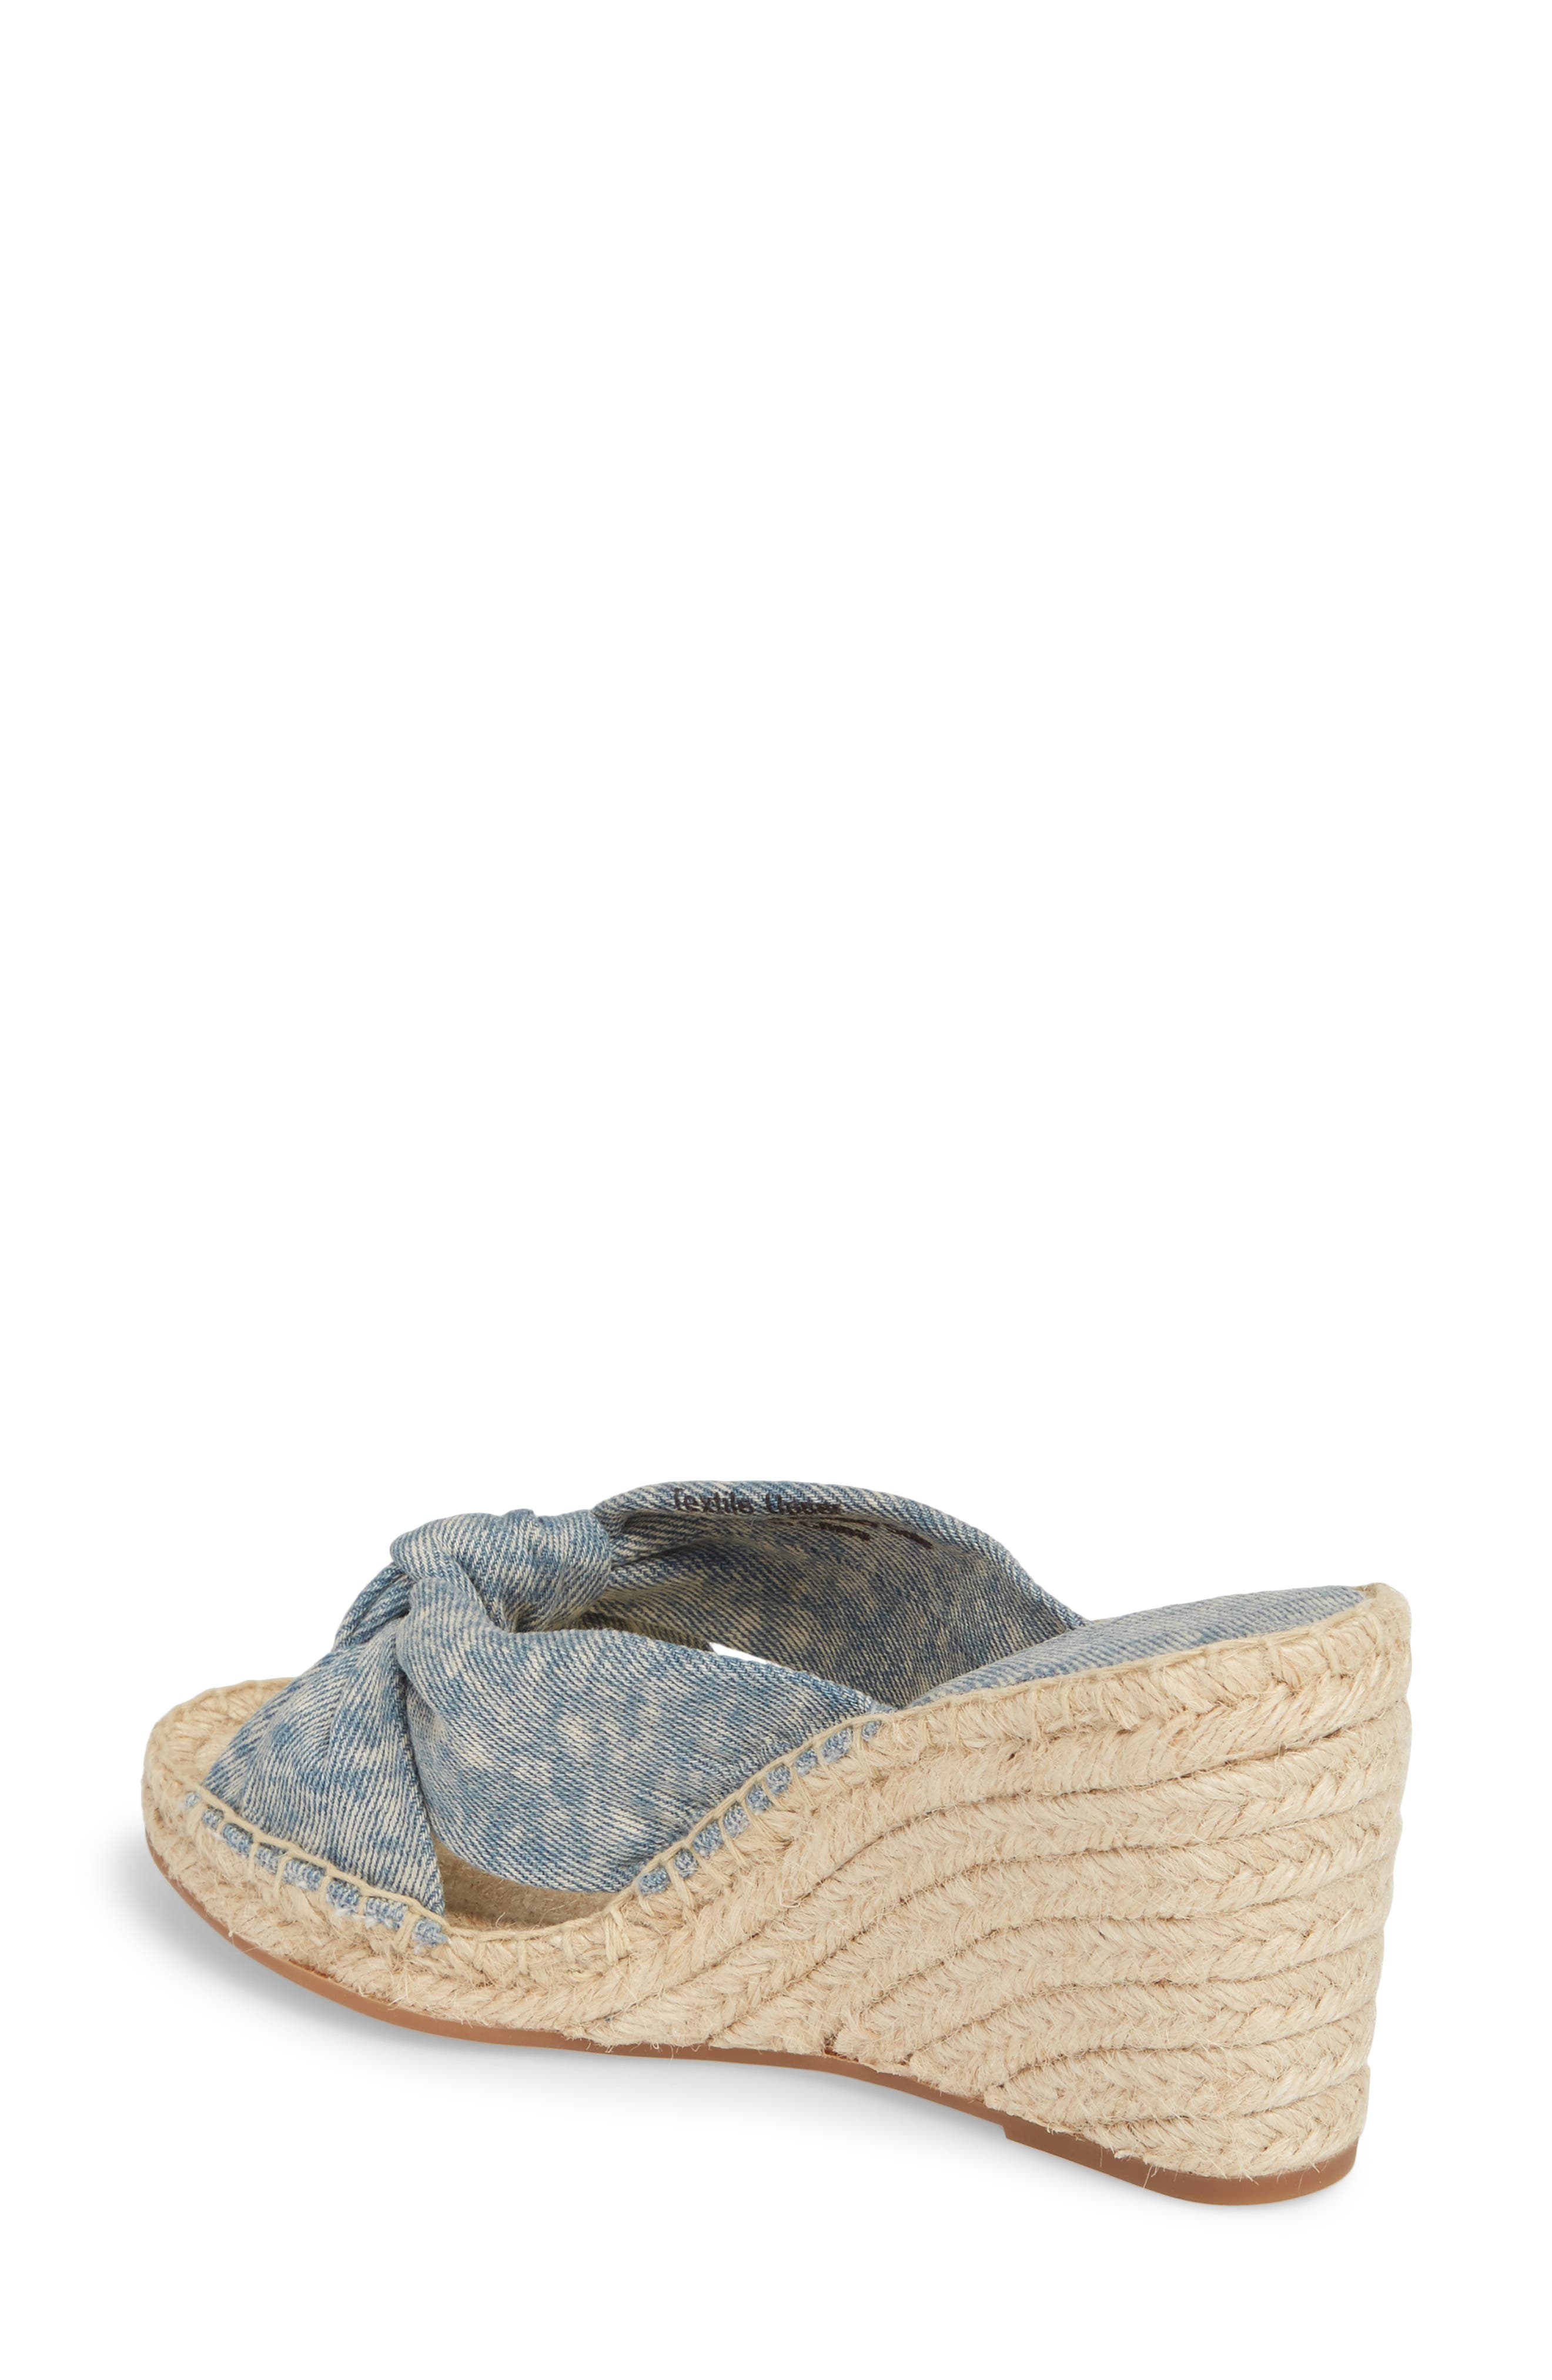 Alternate Image 2  - Splendid Bautista Knotted Wedge Sandal (Women)